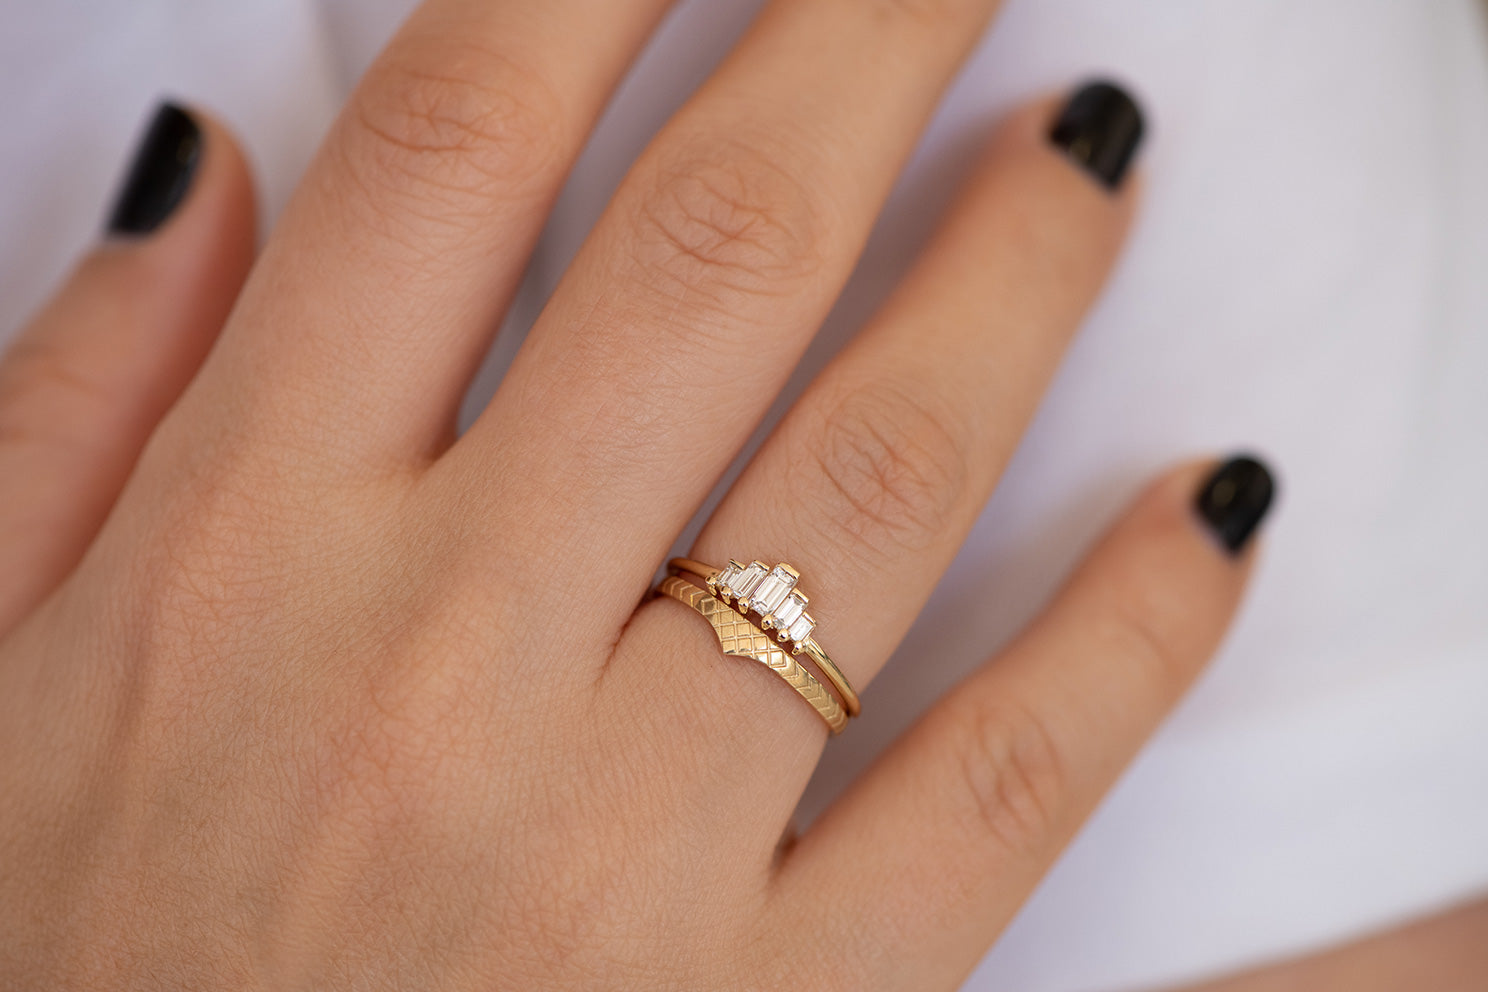 Delicate Wedding Band - Patterned Ring on Hand in set